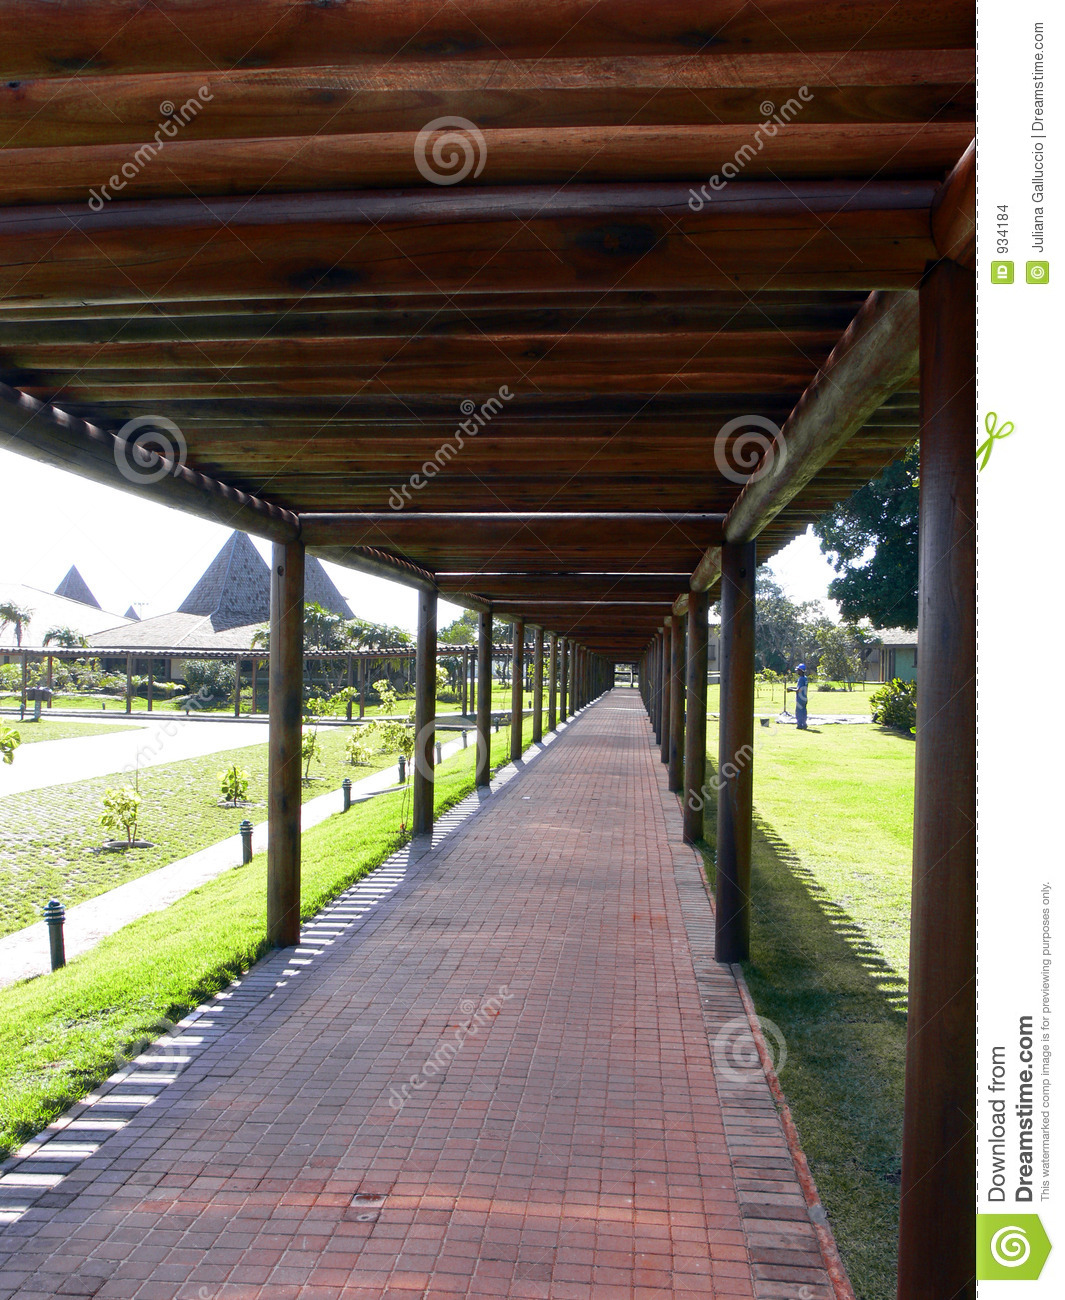 Covered Walkway At Hotel Stock Photo Image Of Walk